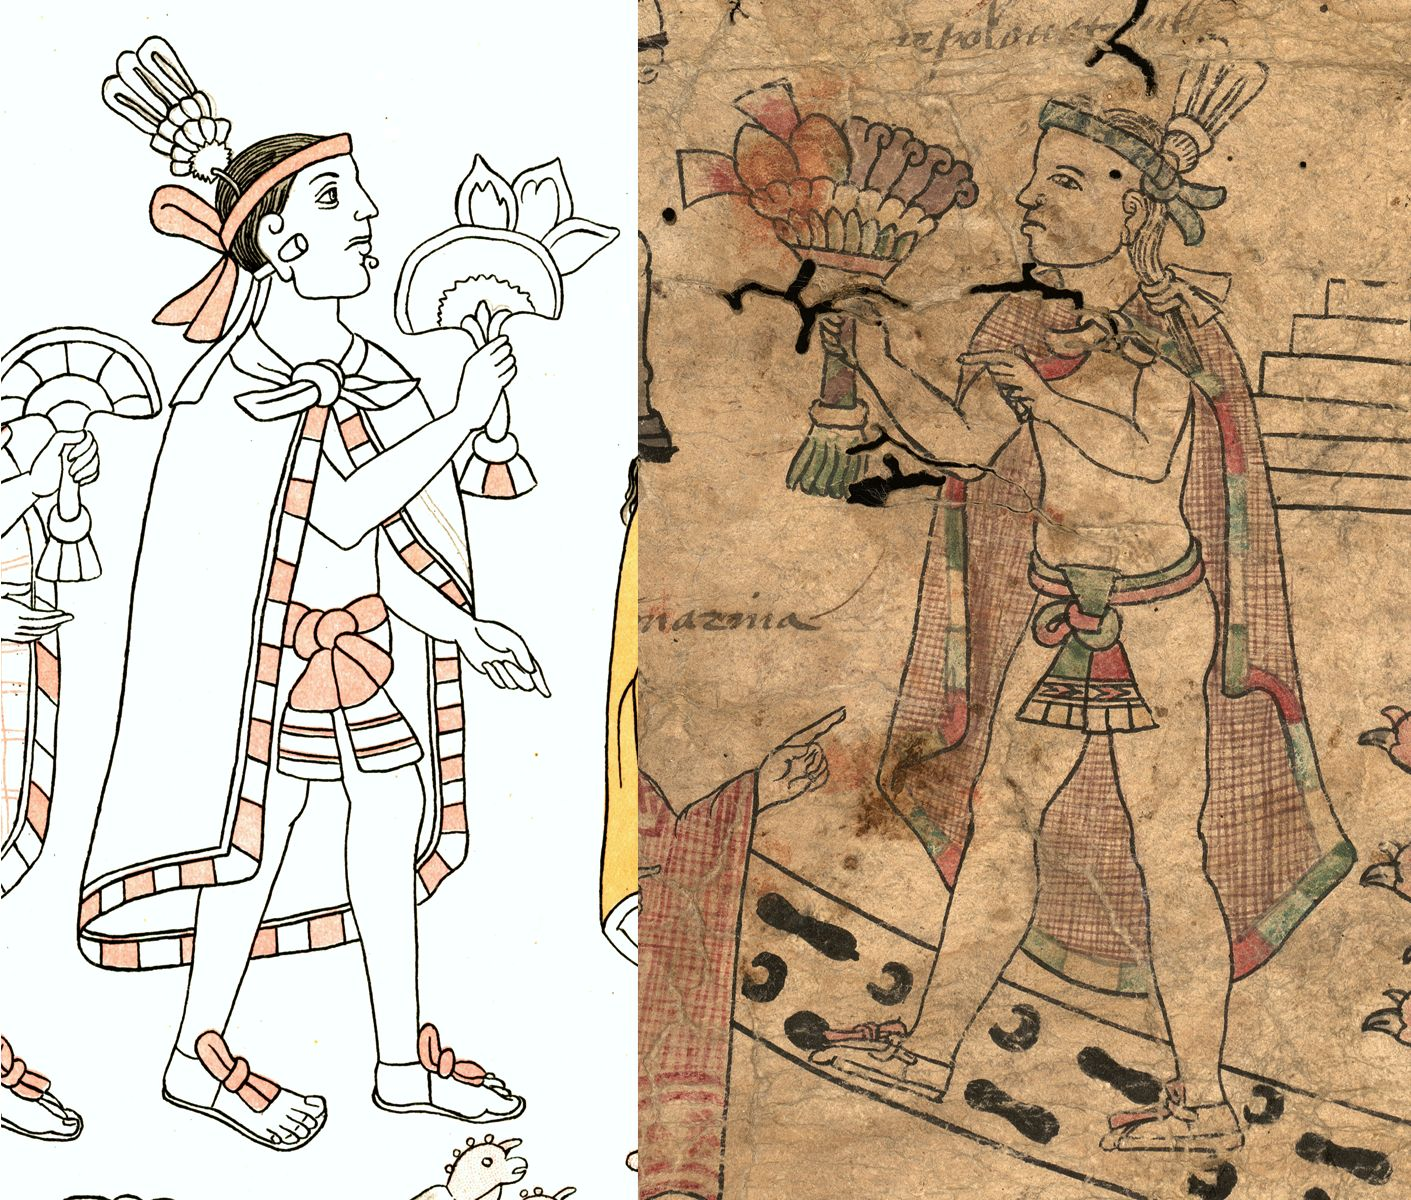 FIGURE 10. Comparison of drawing style in the Texas Fragment and the Lienzo de Tlaxcala: a Tlaxcalan lord (cell 4).